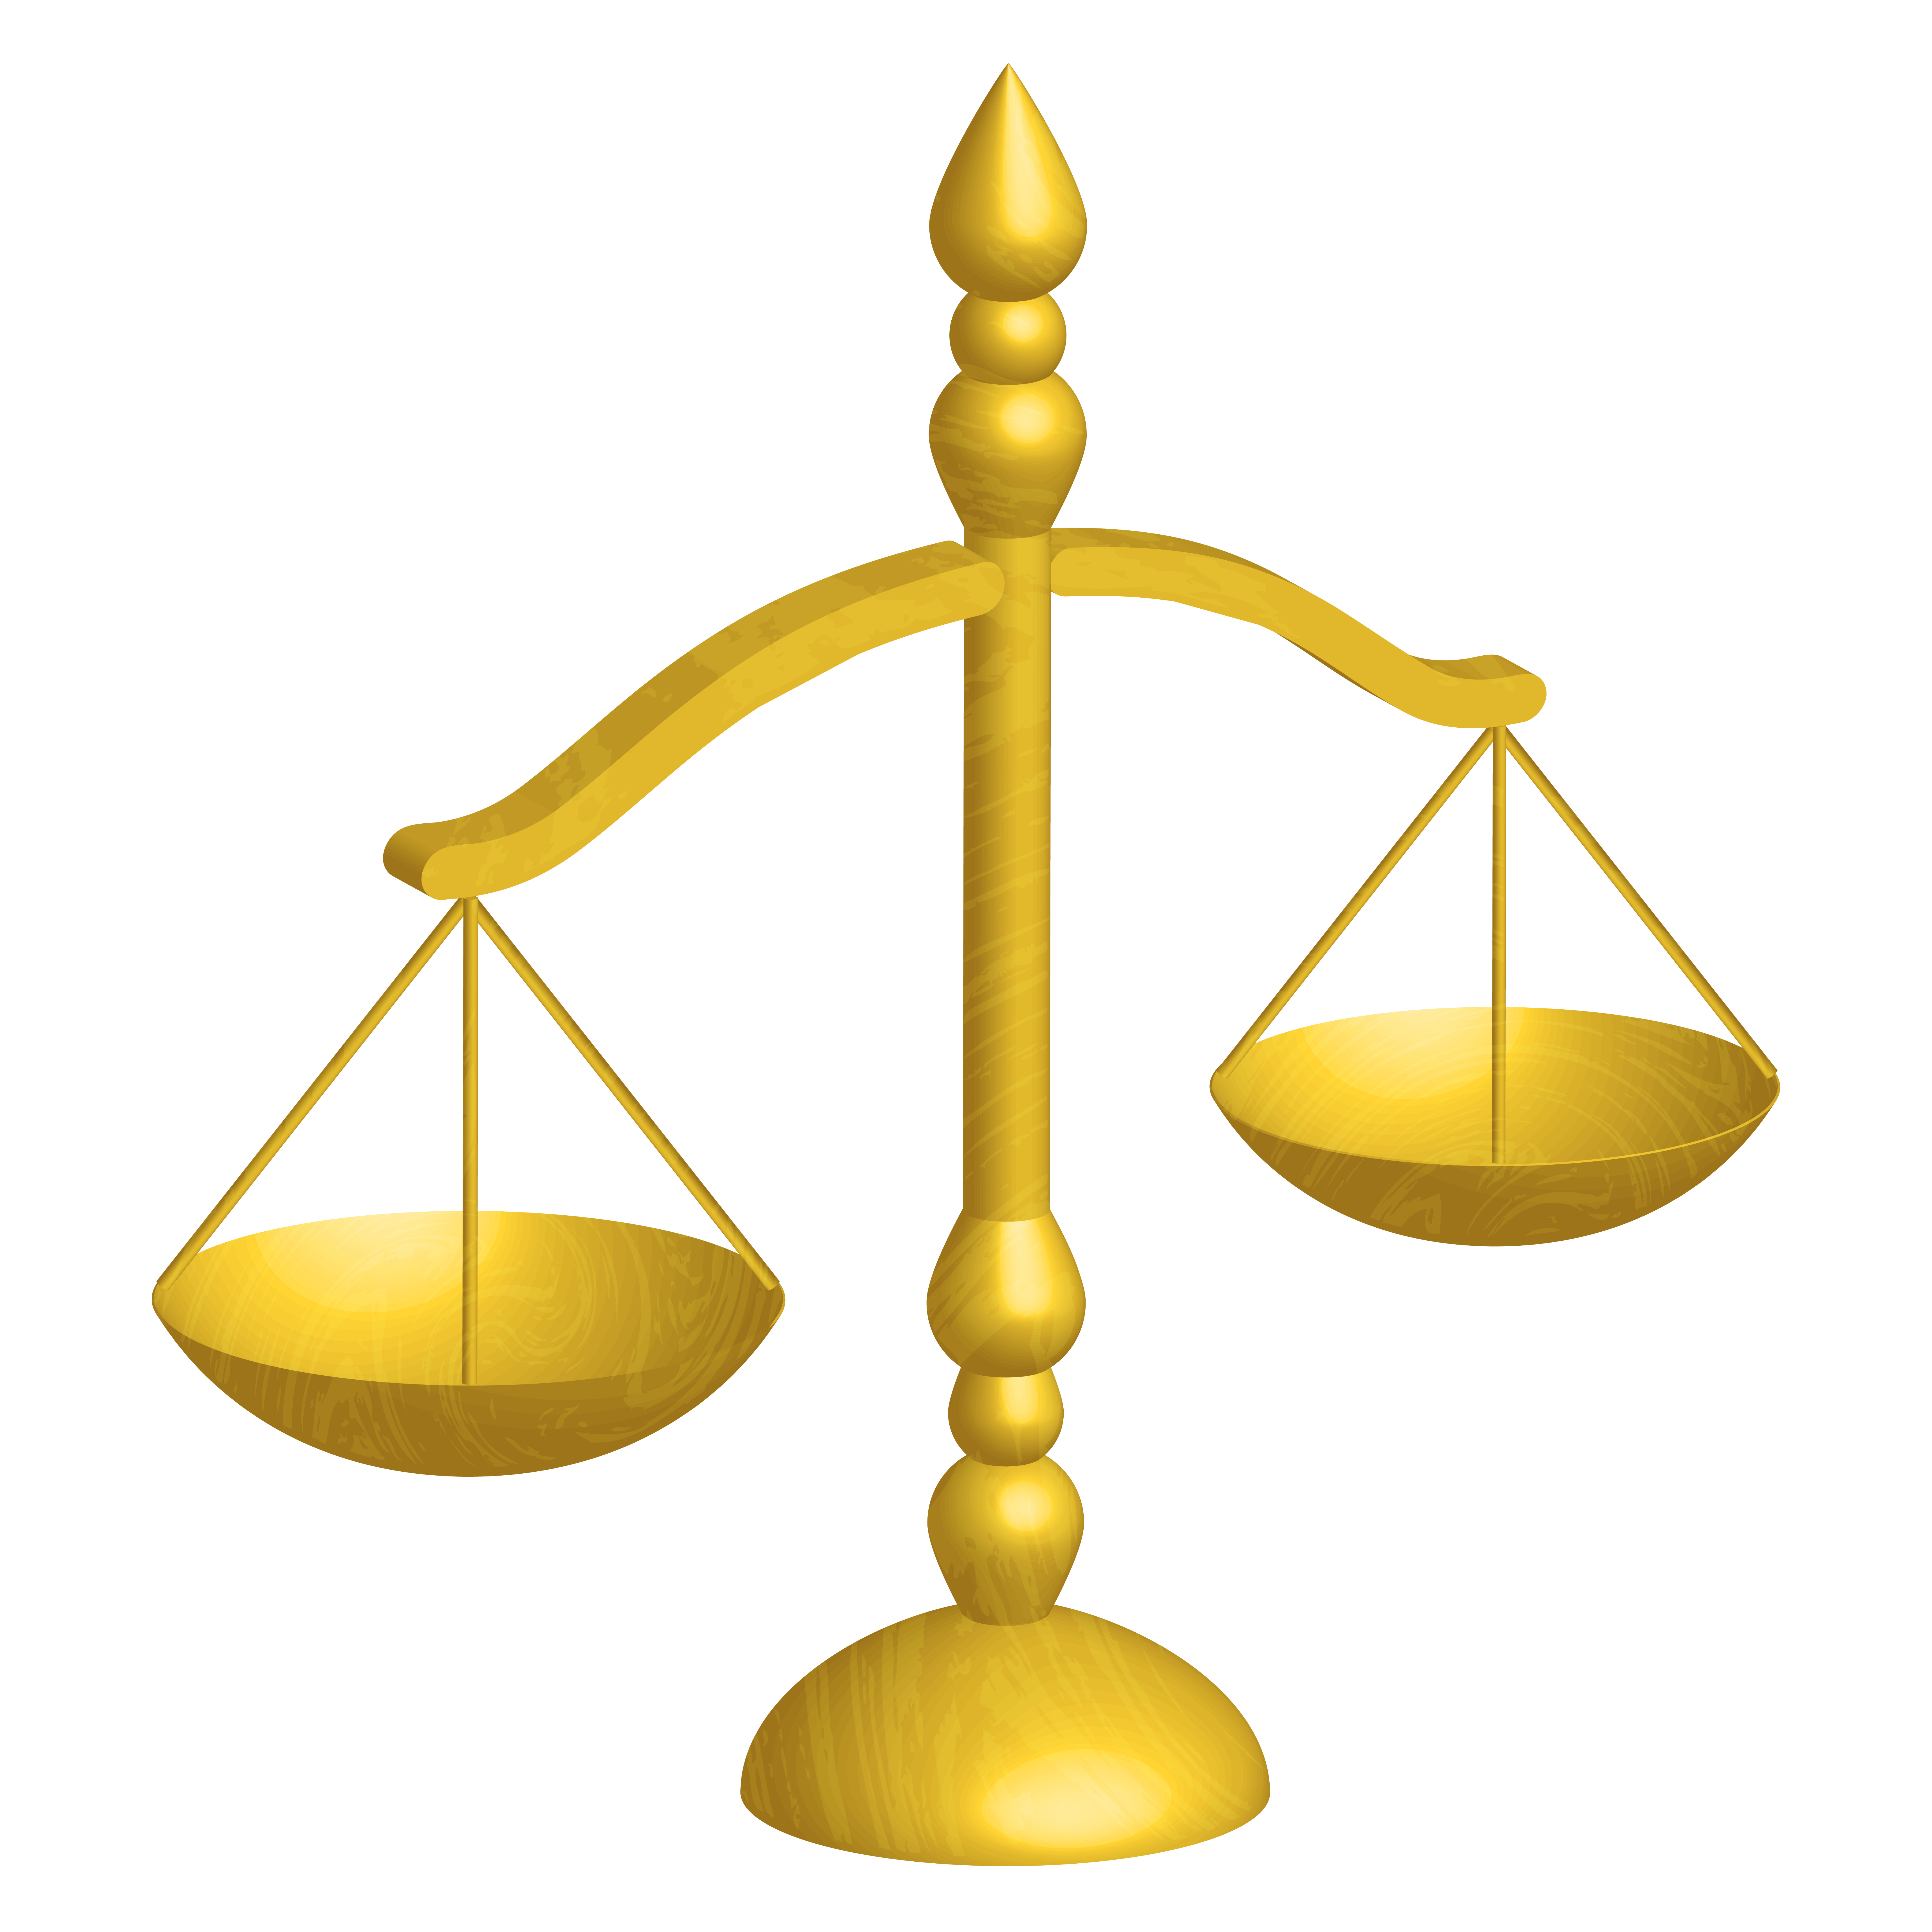 Clipart balance justice png black and white stock Free Scales Of Justice Clipart, Download Free Clip Art, Free Clip ... png black and white stock